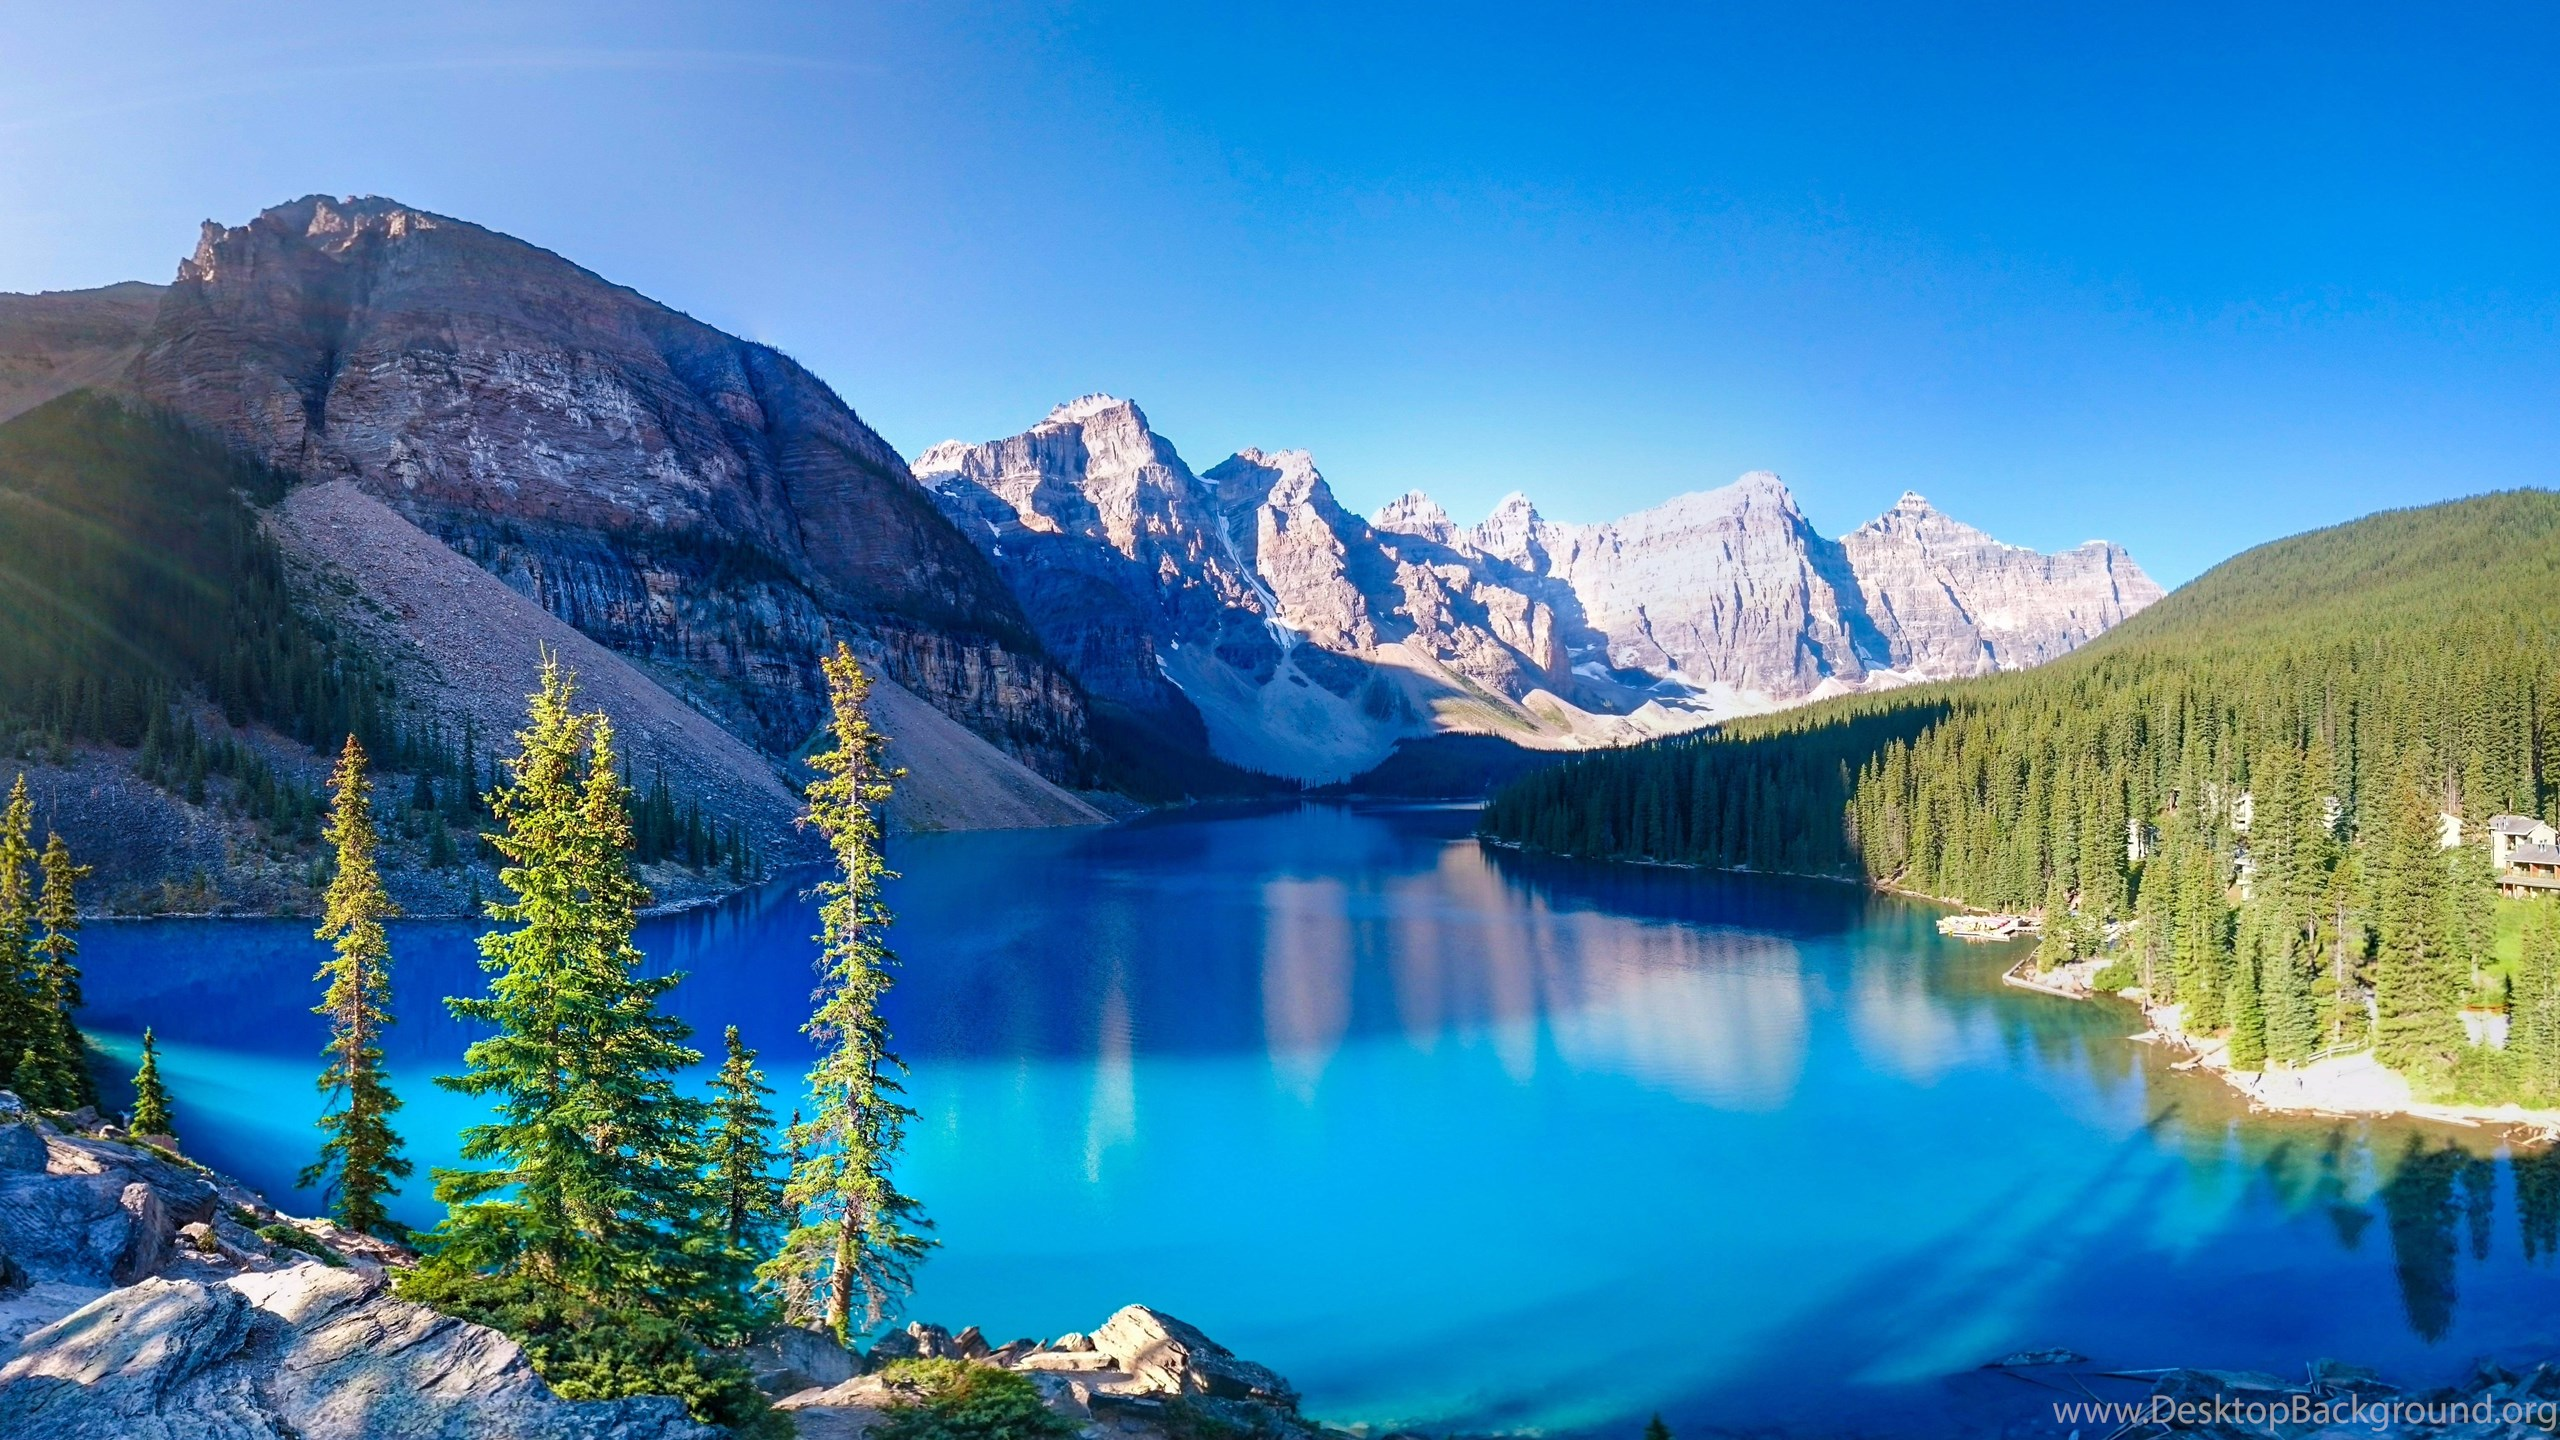 Iphone 4s Hd Wallpapers 1080p Lakes Moraine Lake Mountain Nature Fun Forest Cool